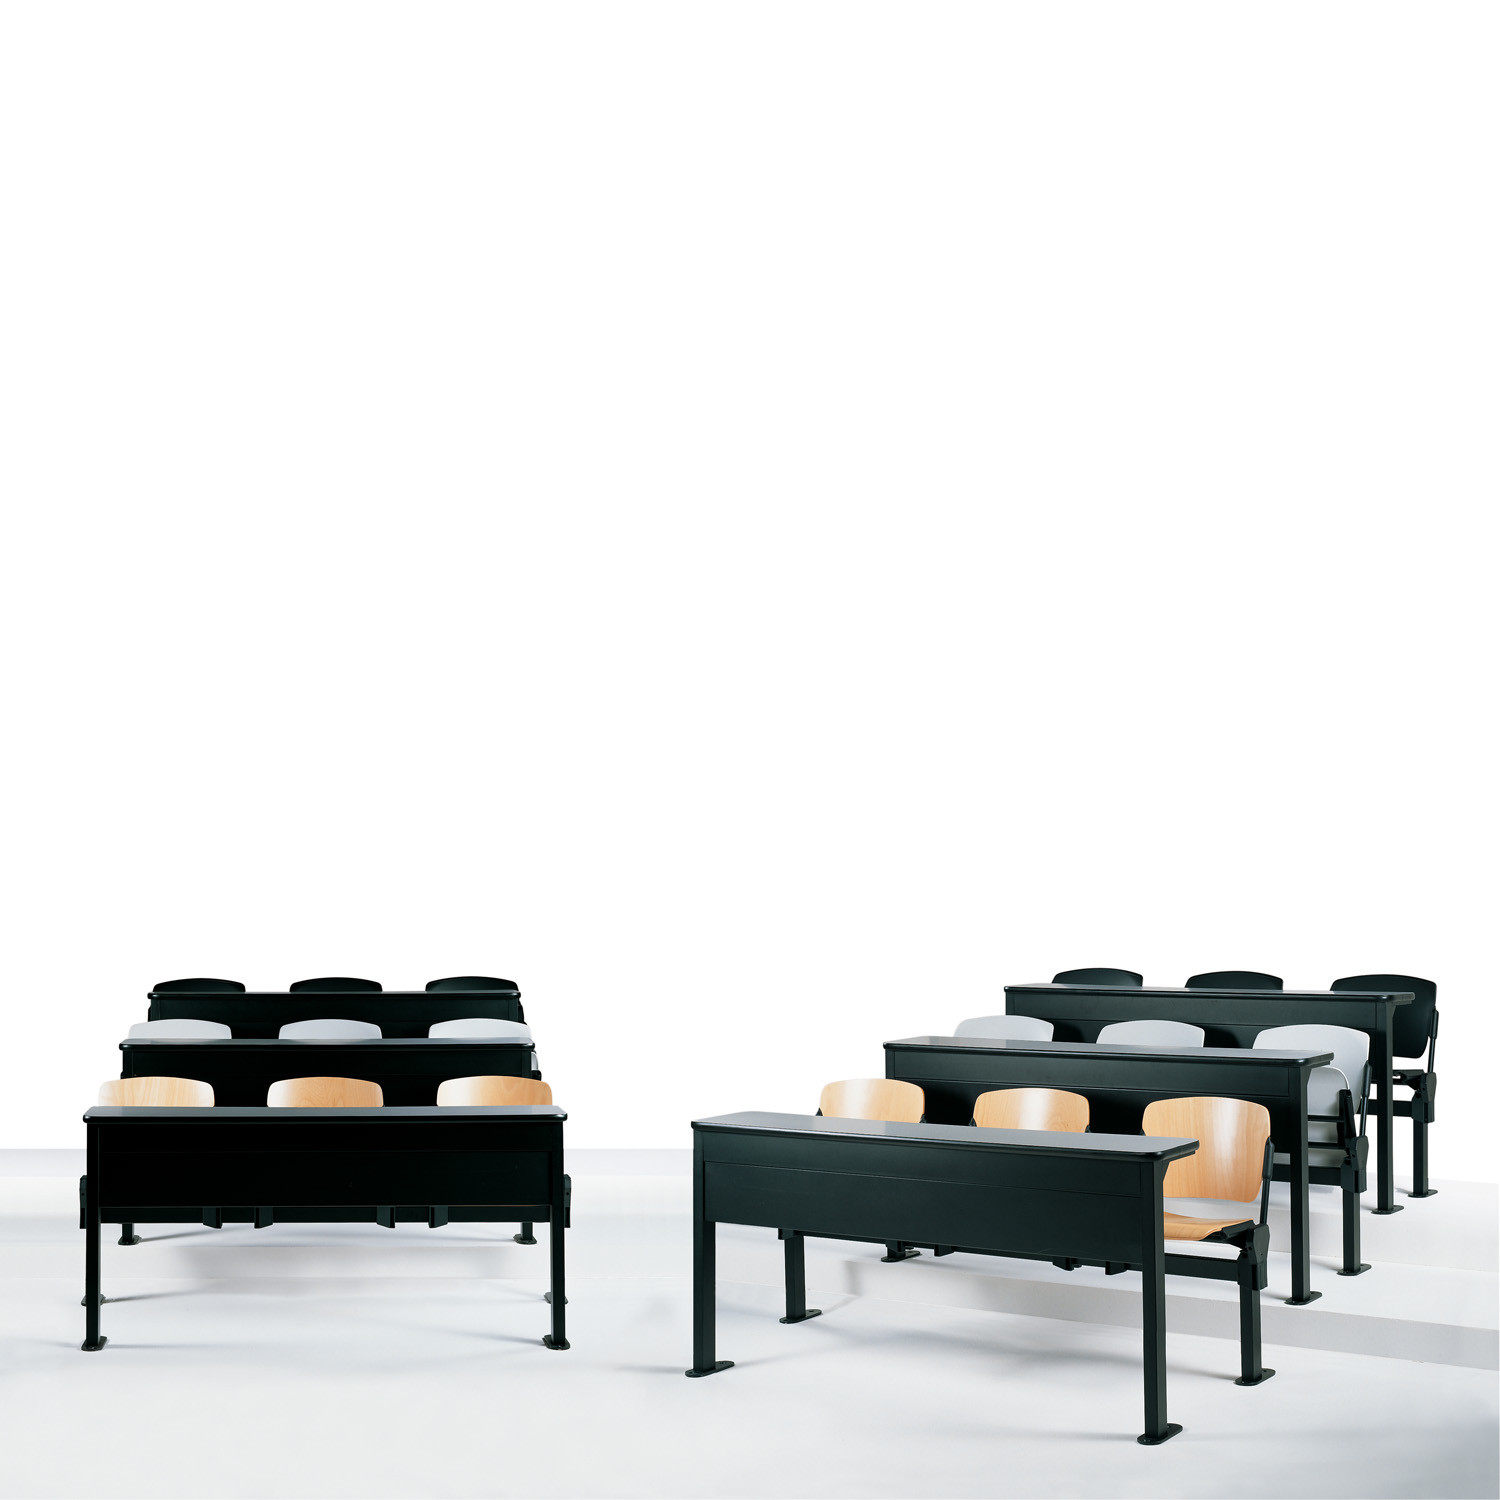 Mimi Tandem Seating integrated with space-saving desks